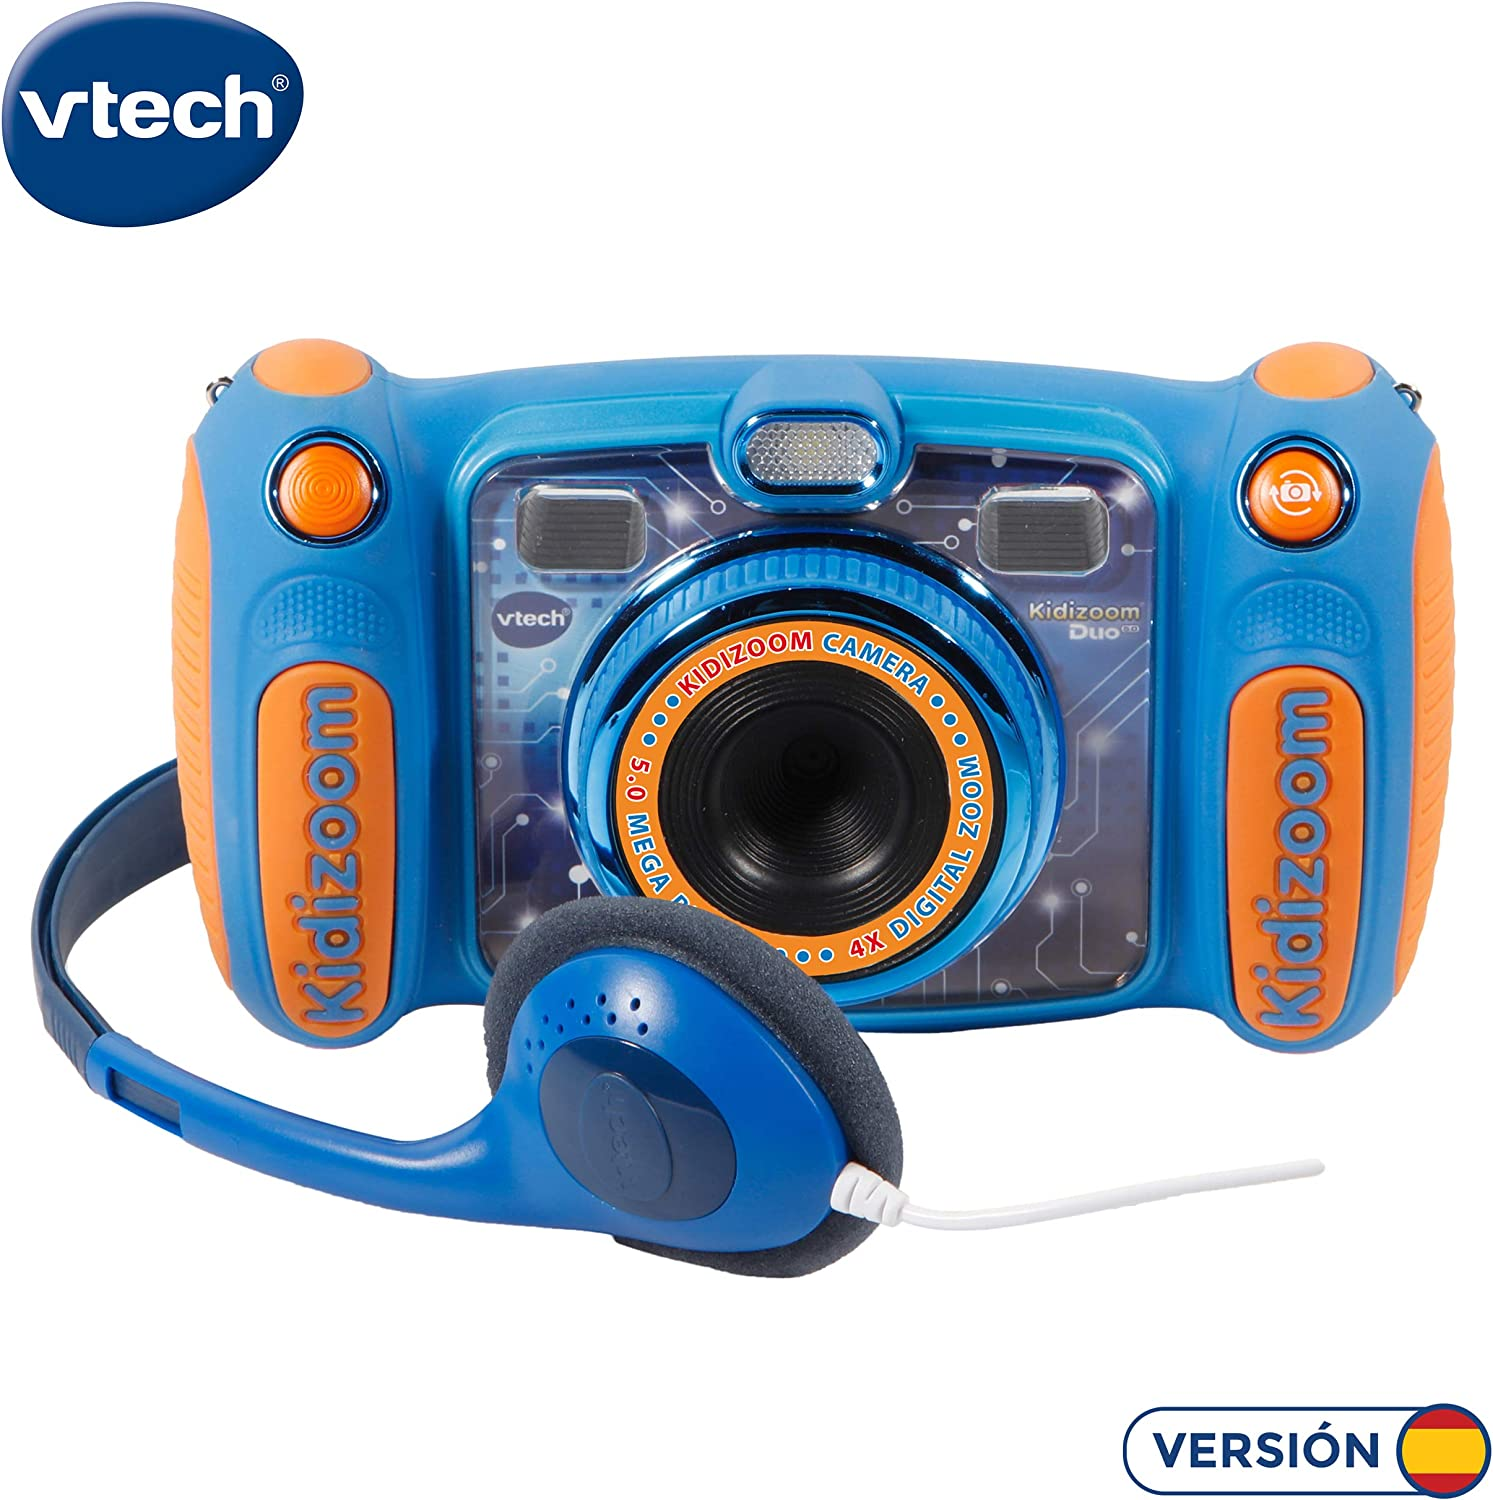 Amazon.es: VTech Kidizoom Duo 5.0 - Cámara de fotos digital ...